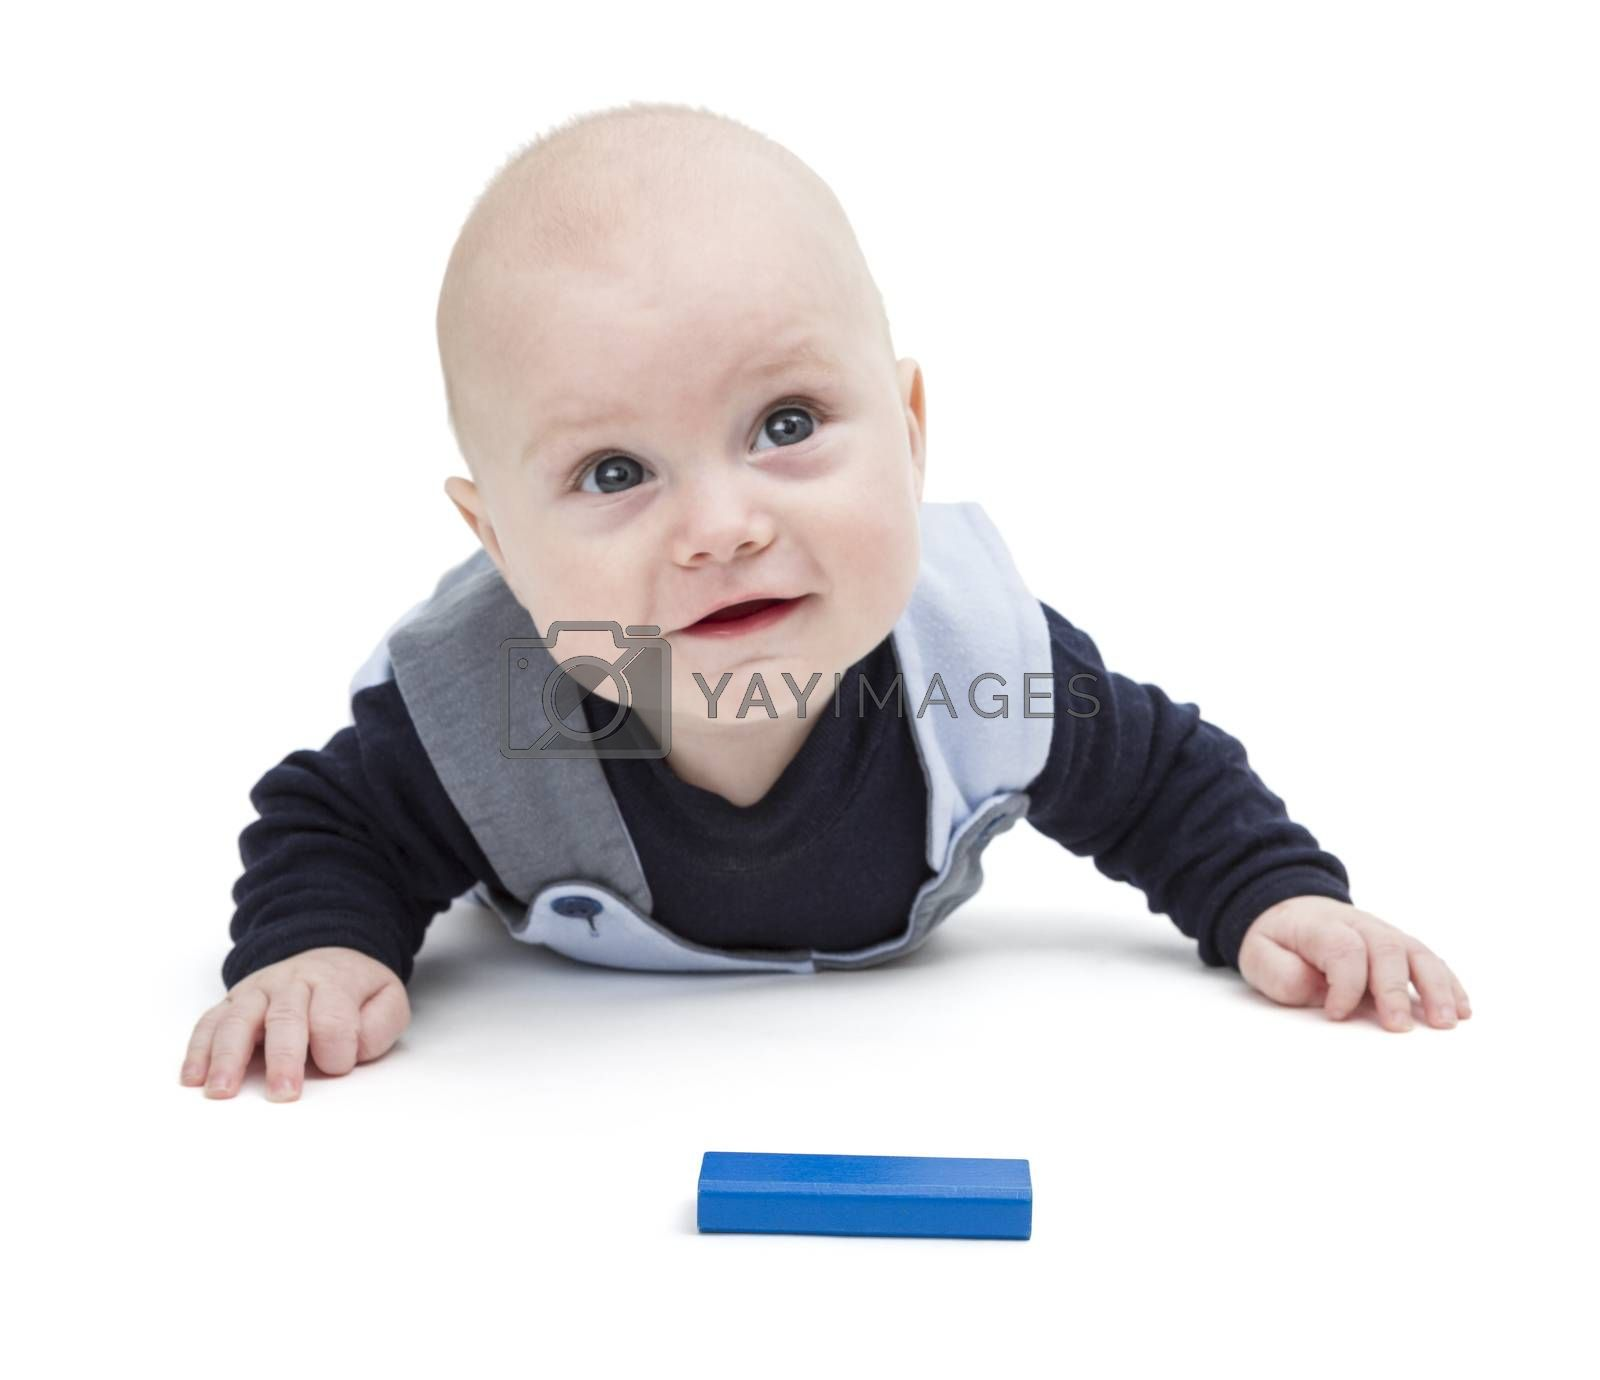 Royalty free image of interested baby with toy block by gewoldi